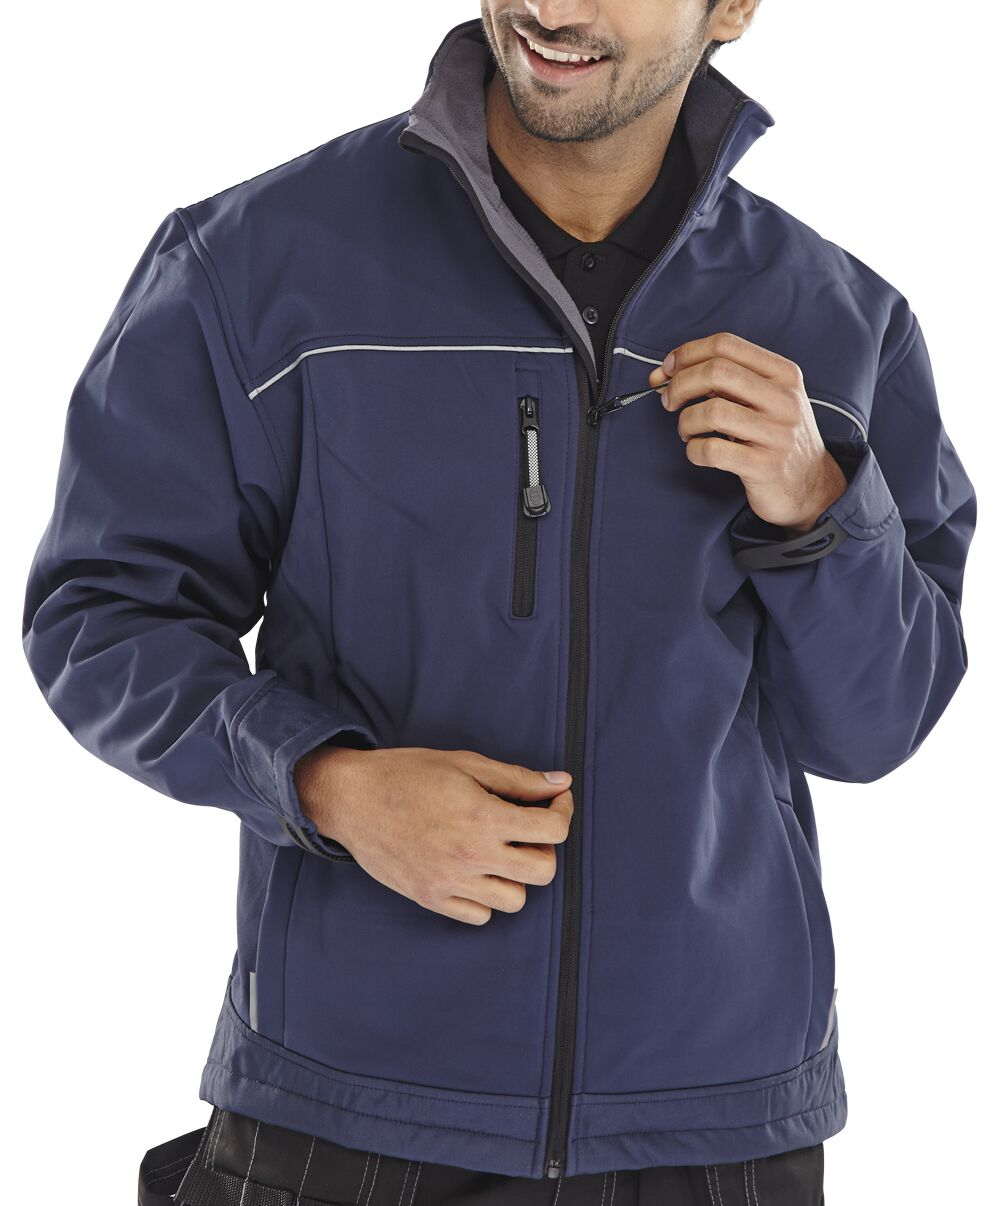 Click Workwear Soft Shell Jacket Water Resistant Windproof XL Navy Ref SSJNXL *Approx 3 Day Leadtime*